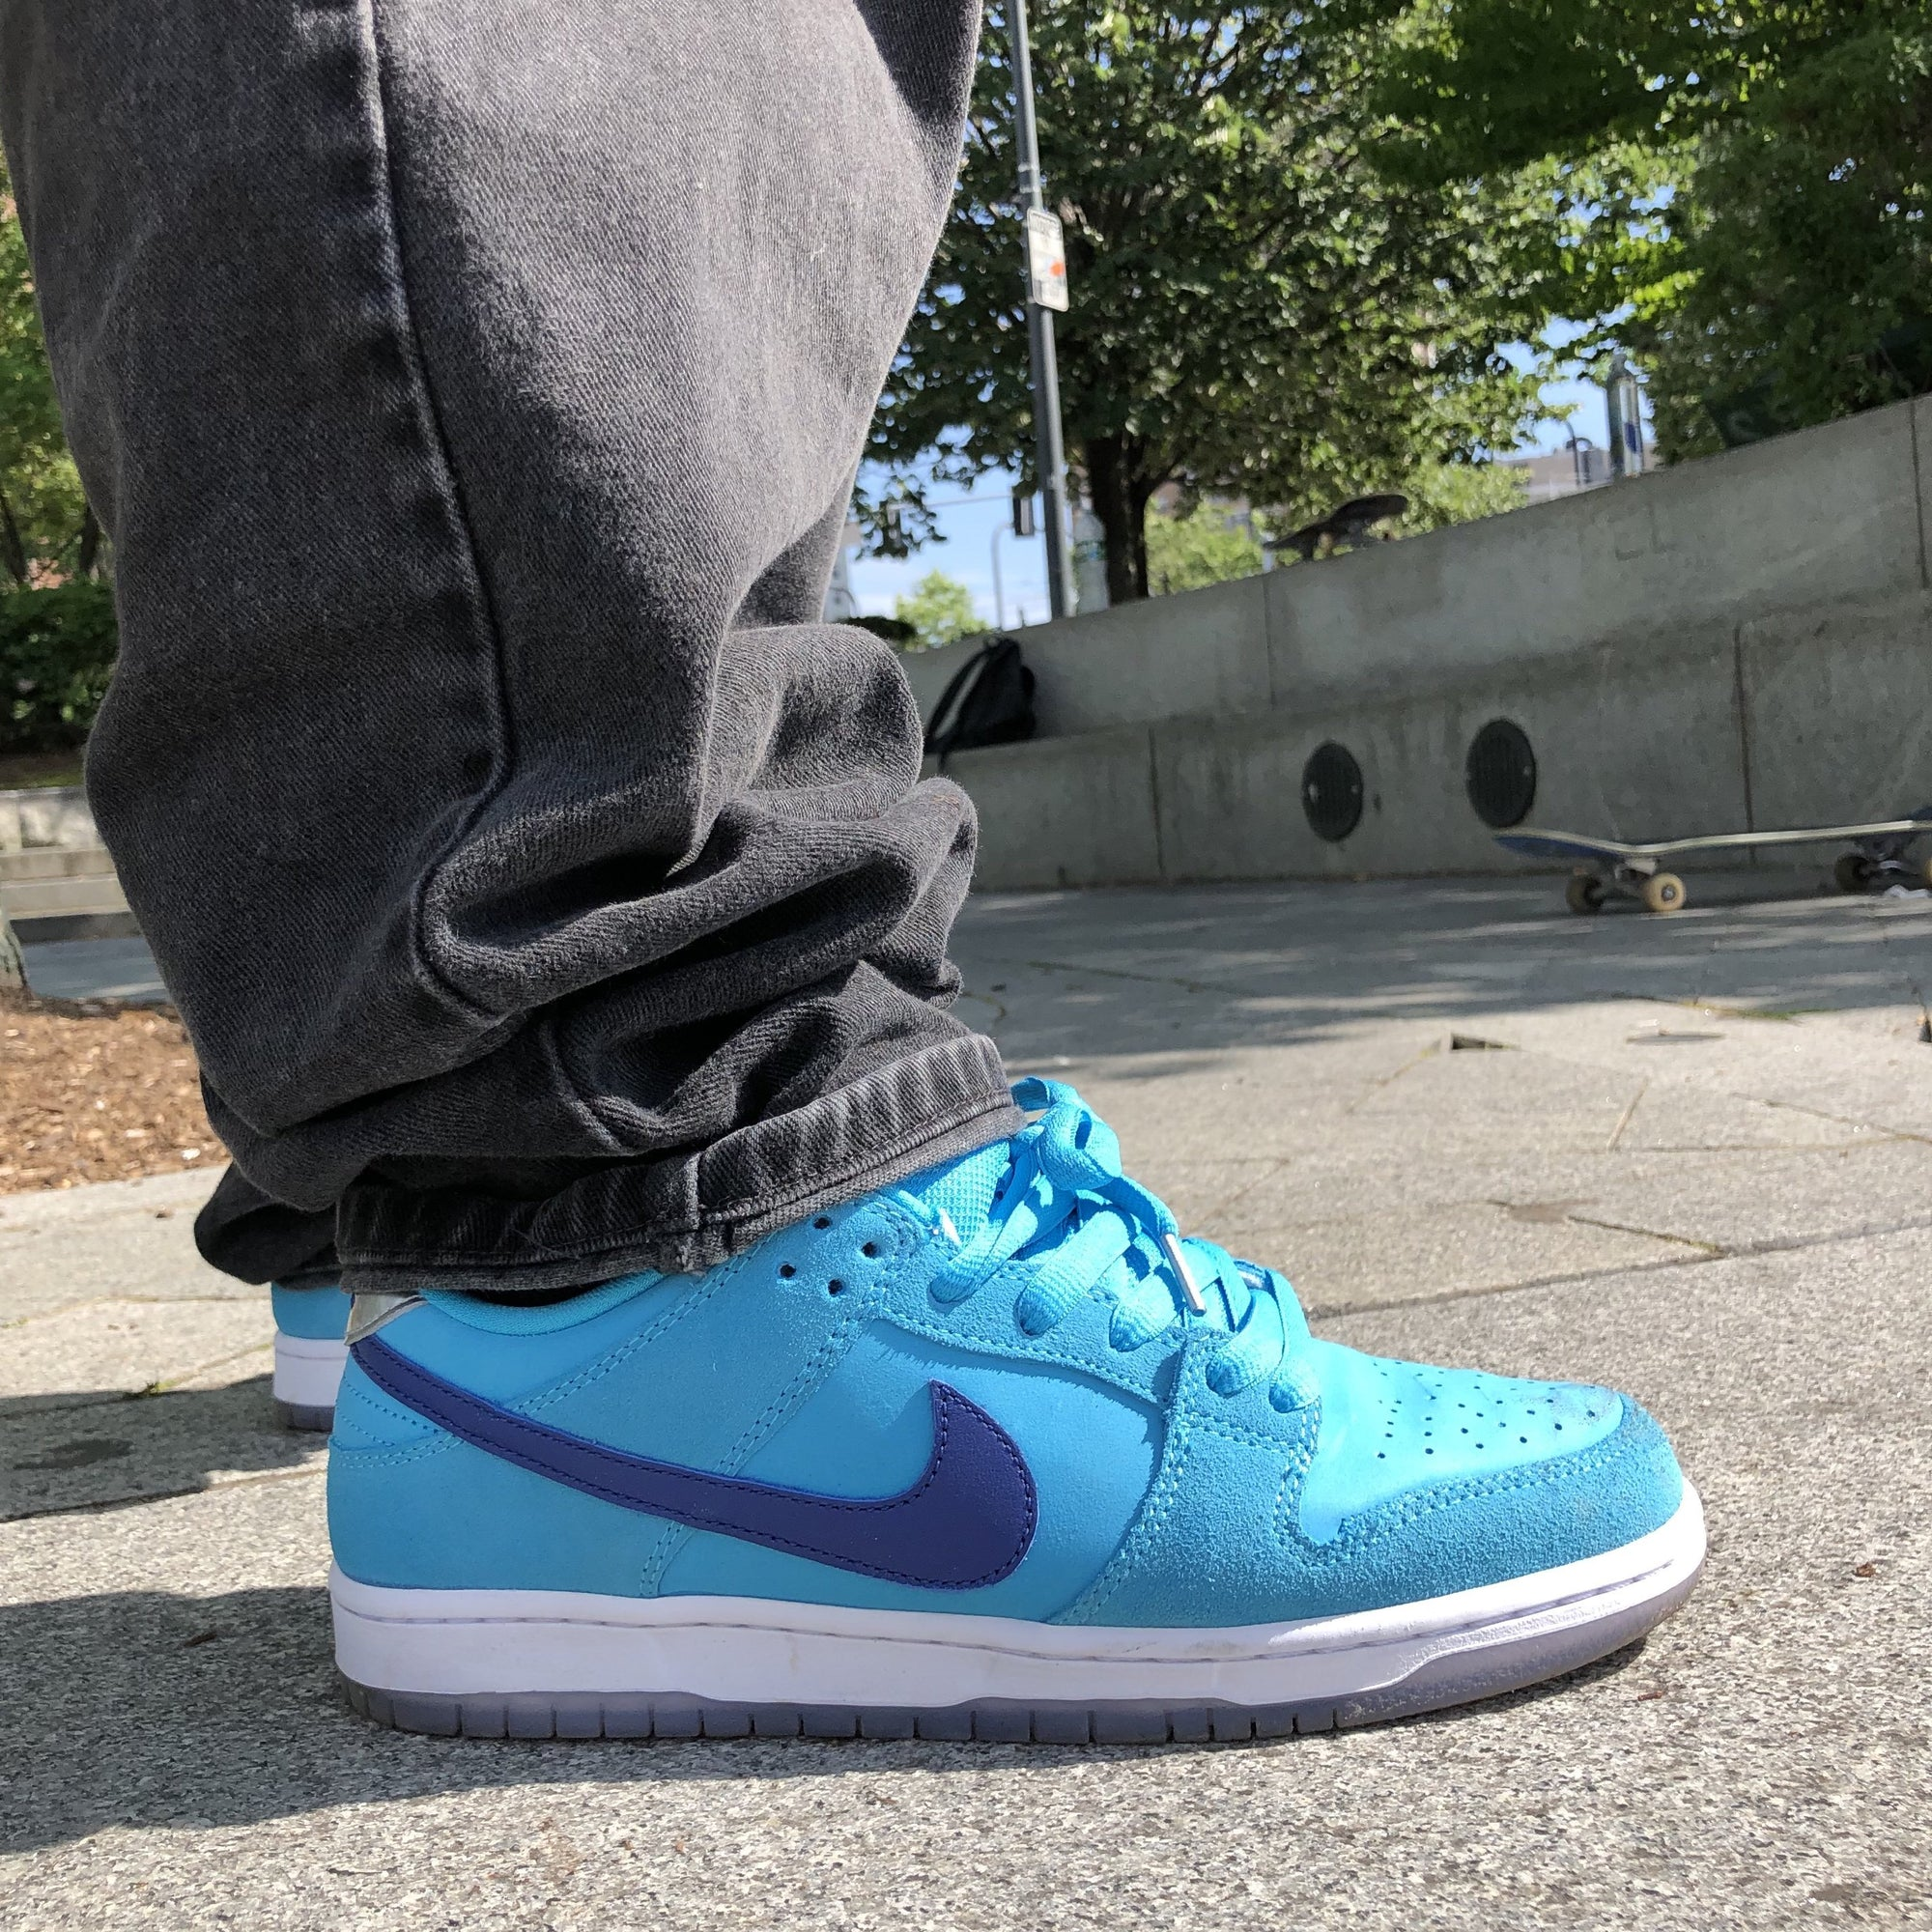 Nike SB Blue Fury Dunk Low Raffle